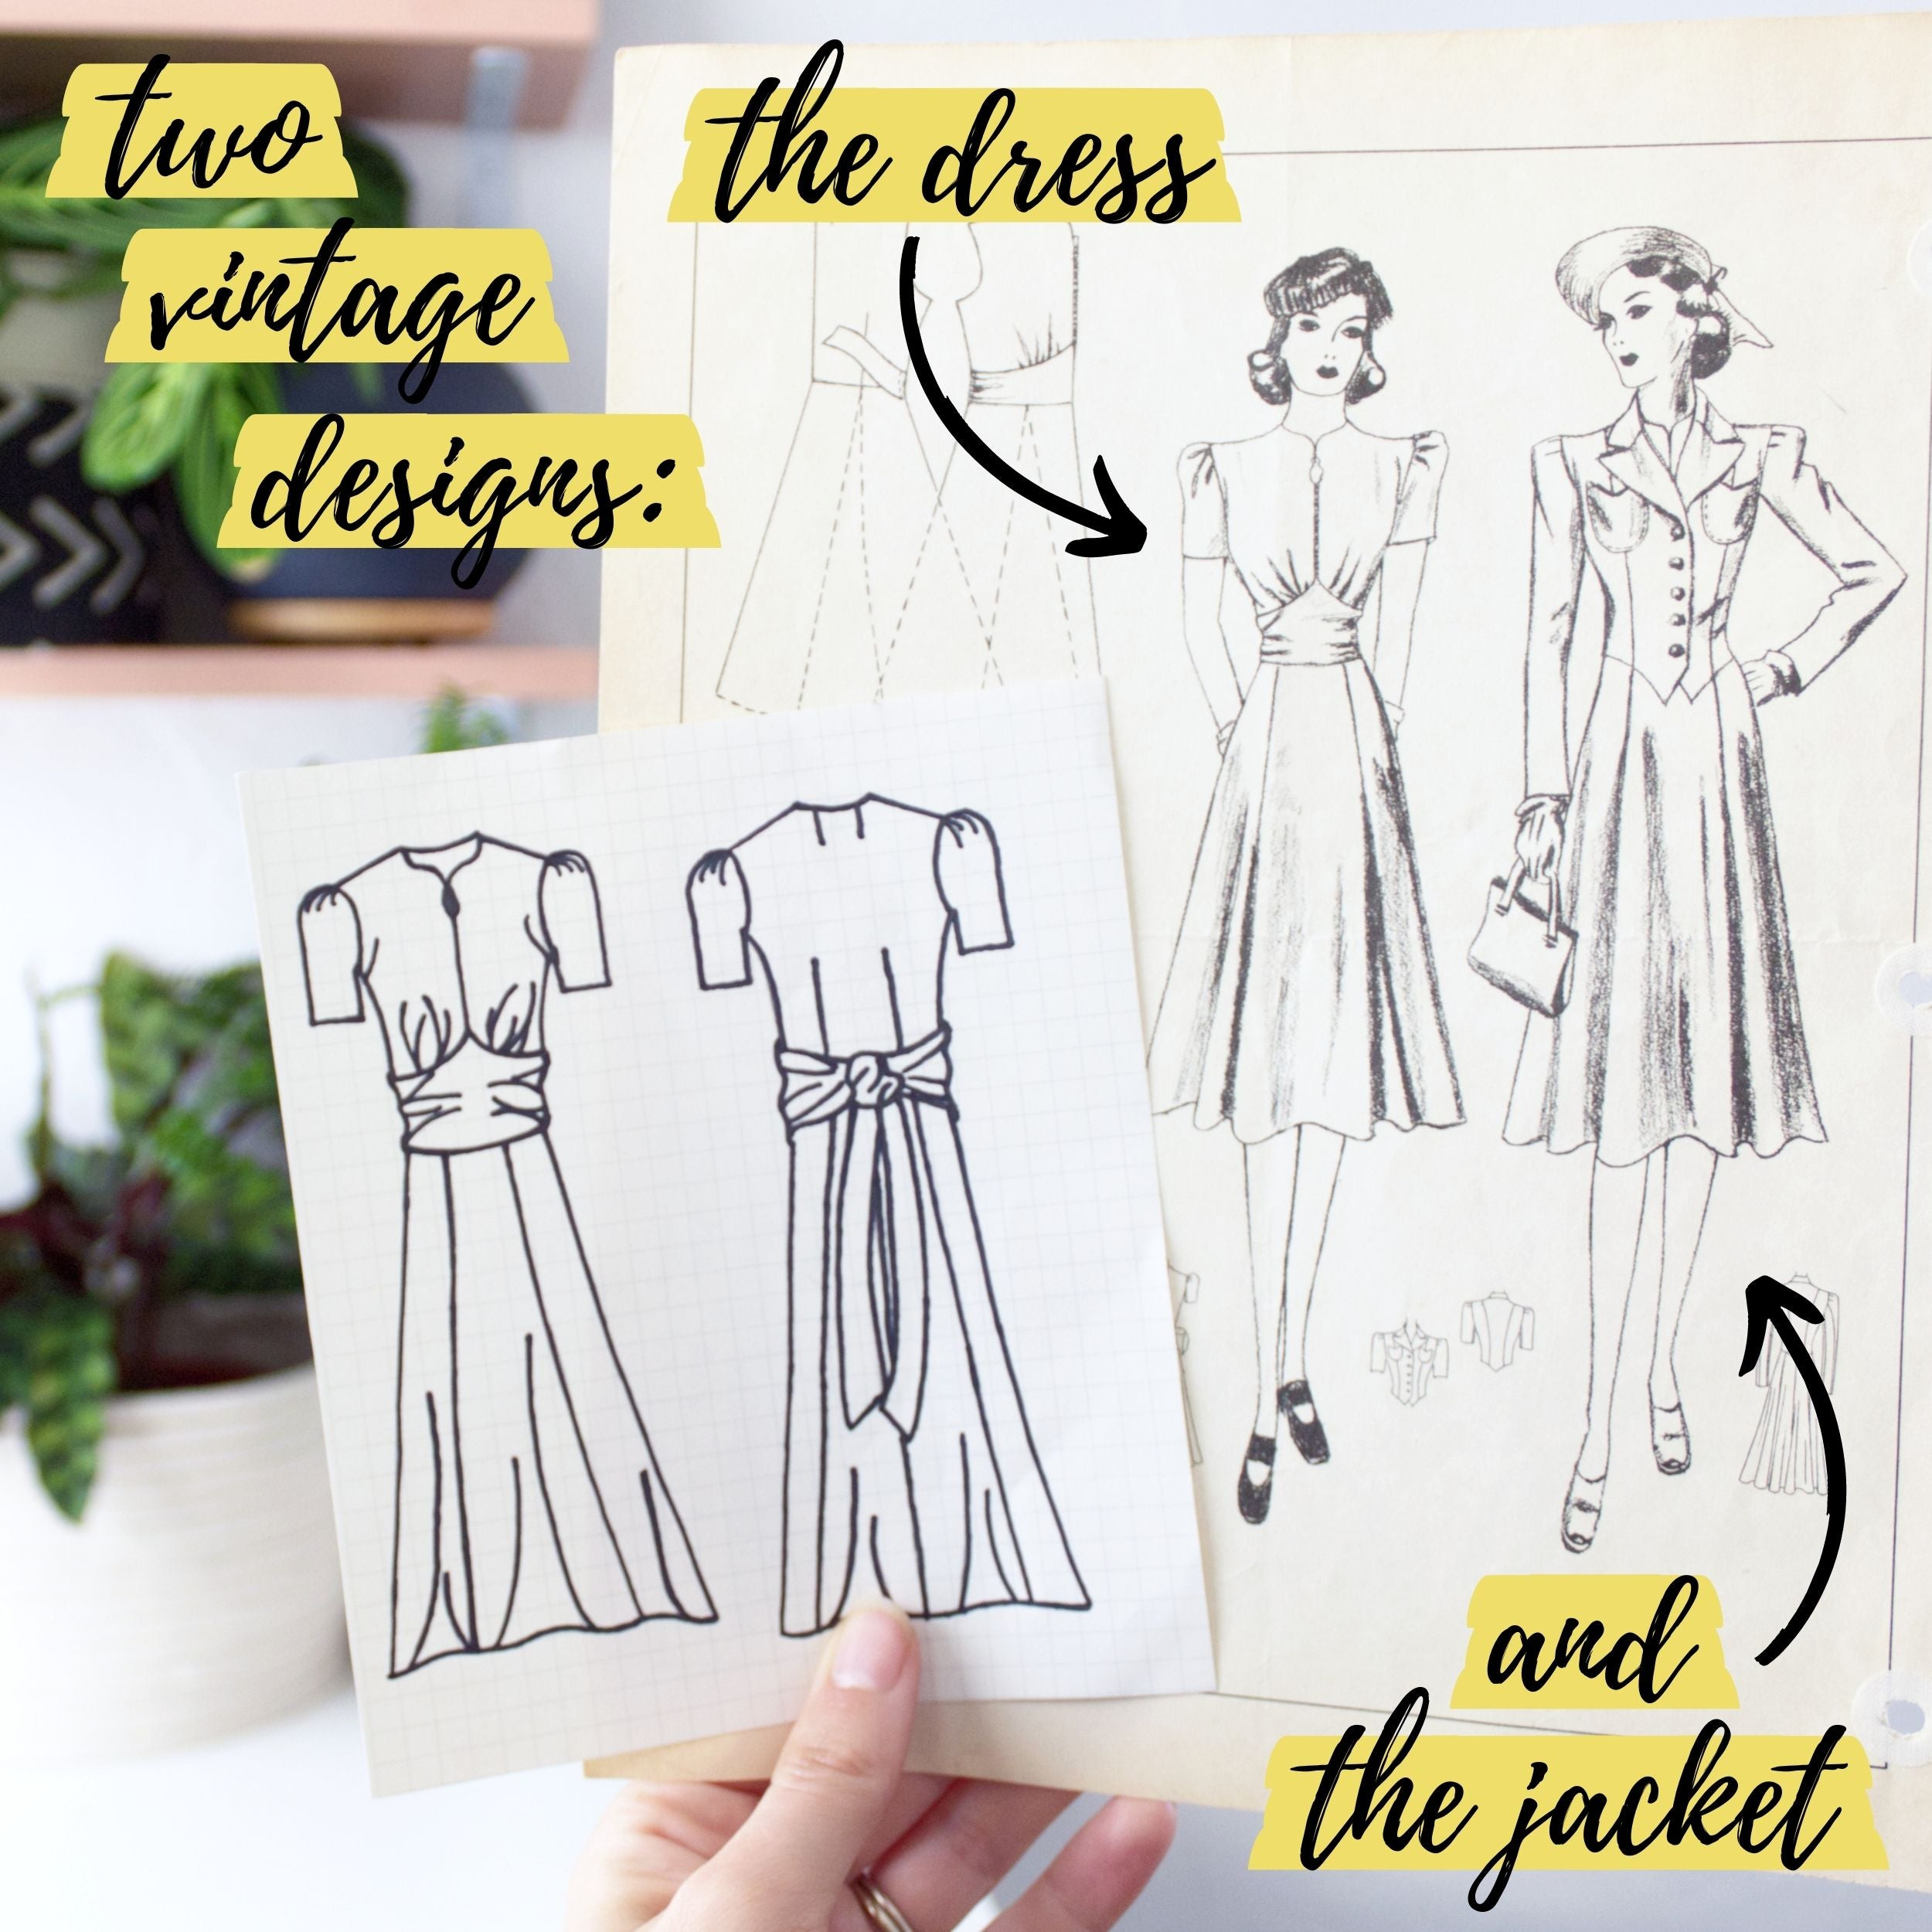 Two vintage sewing pattern designs: The dress & matching jacket